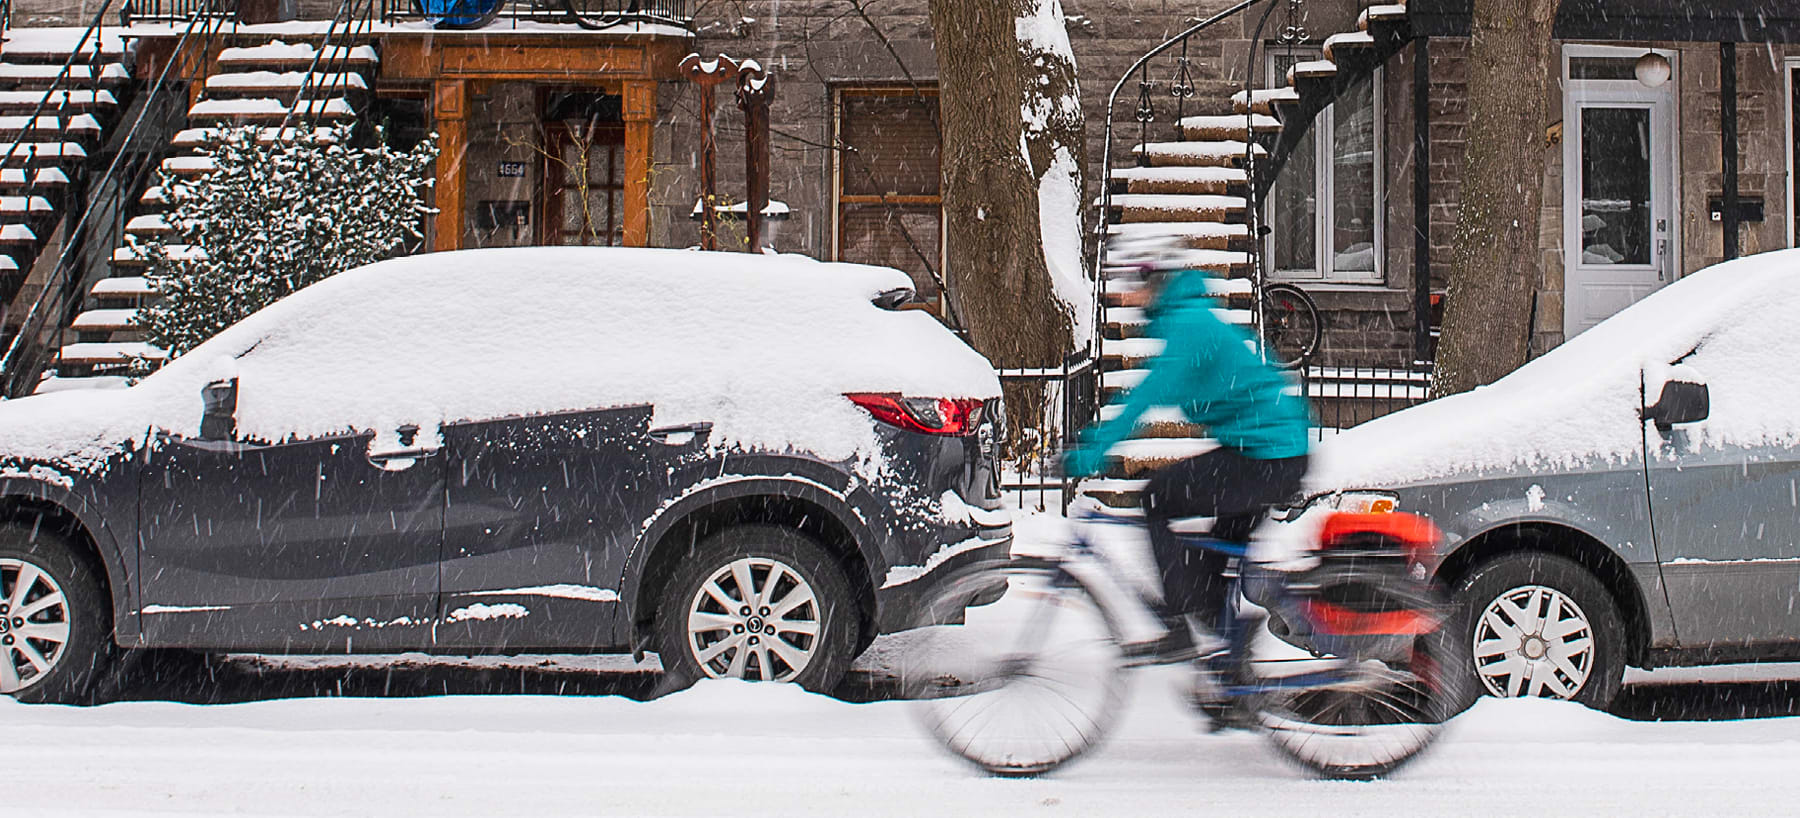 Riding a bike in the snow